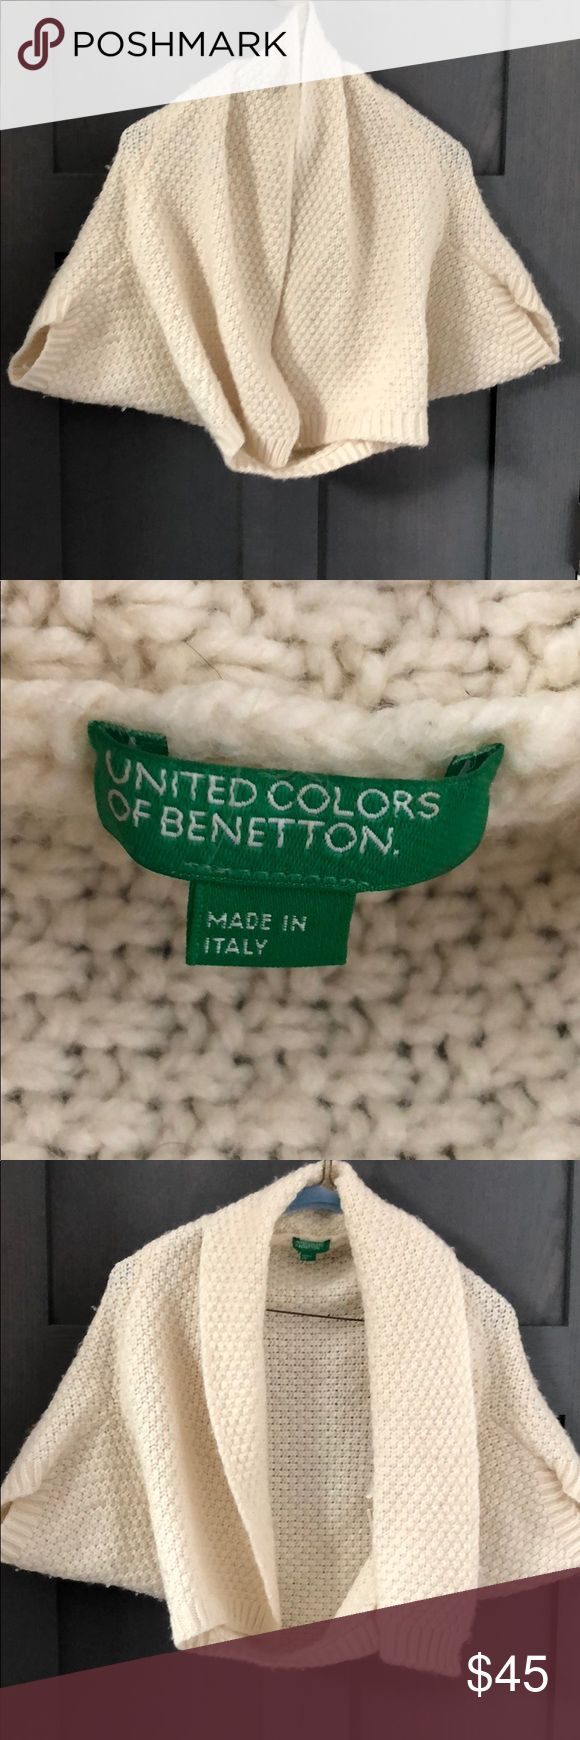 Vintage United colors of Bennetton capelet Cream wool Cape! So lively over a dress or a tee shirt. Great quality and in good shape. United Colors Of Benetton Sweaters Shrugs & Ponchos